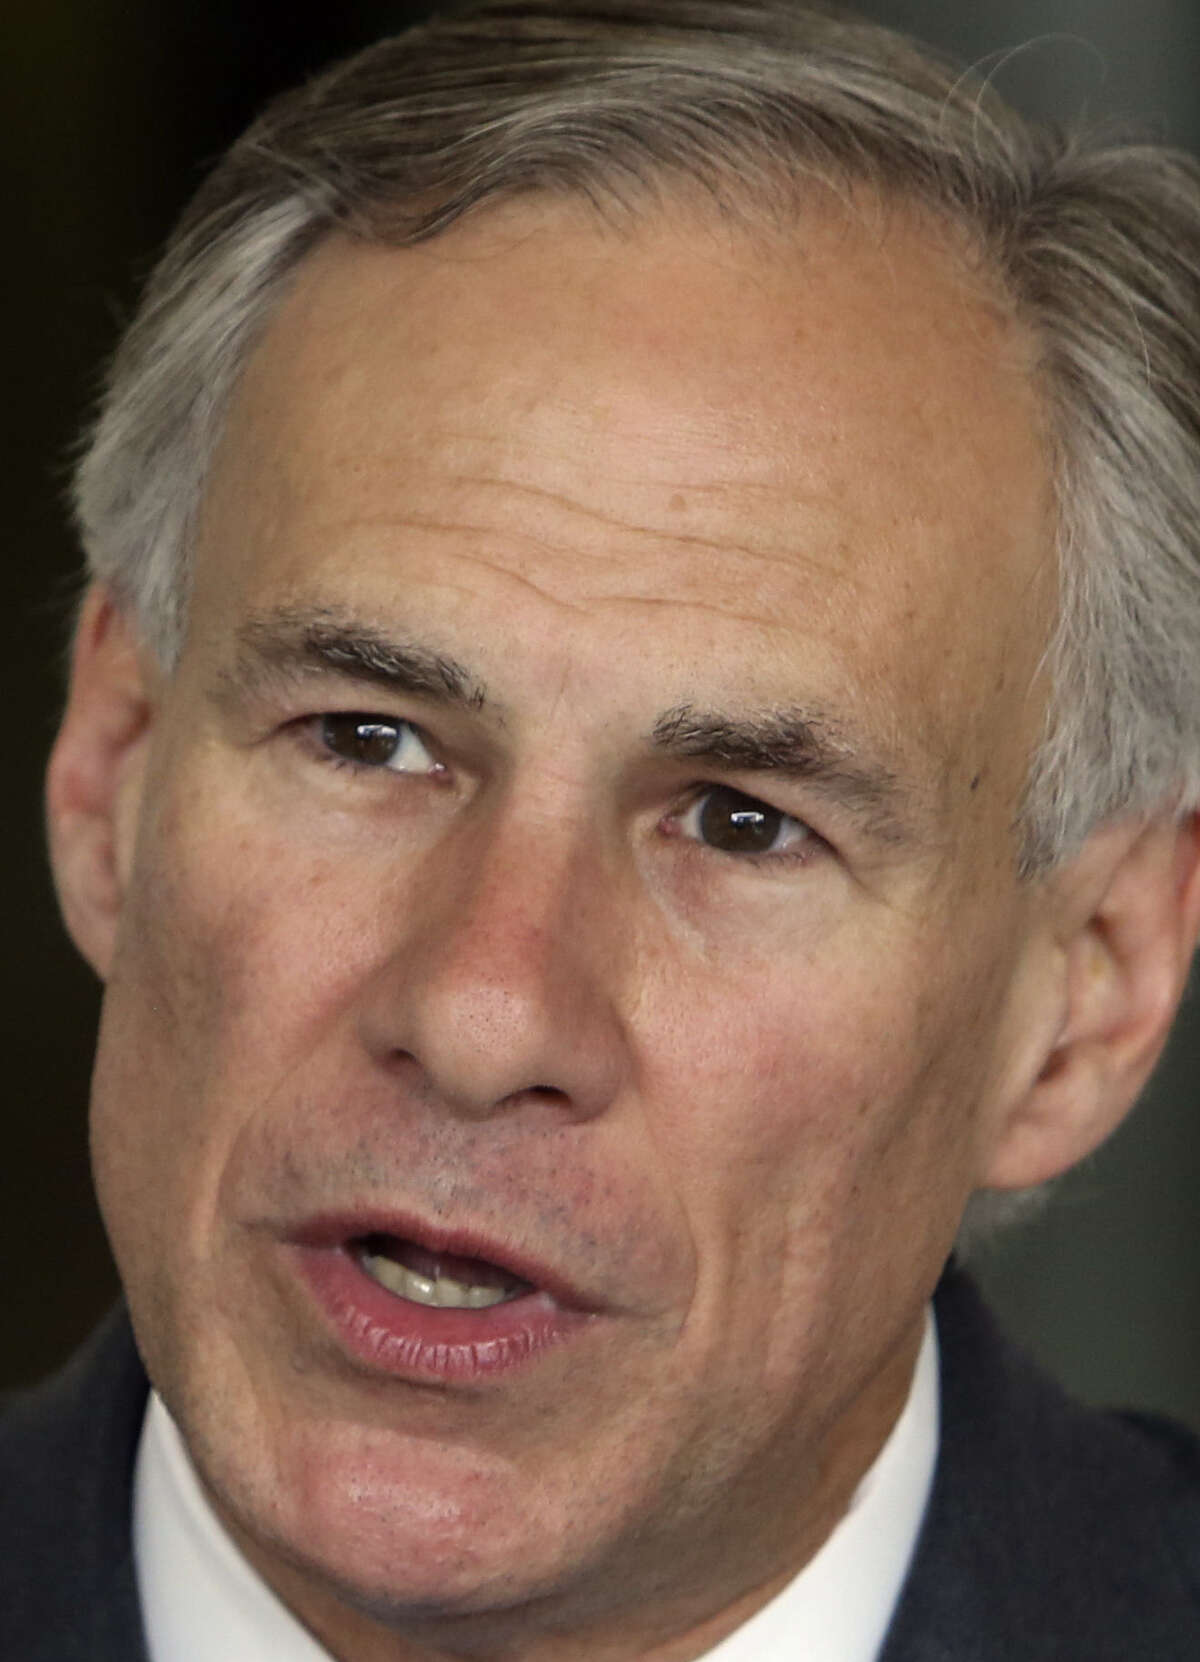 GOP gubernatorial nominee Greg Abbott discusses his education policies while visiting the Toyota plant on Monday May 12, 2014.